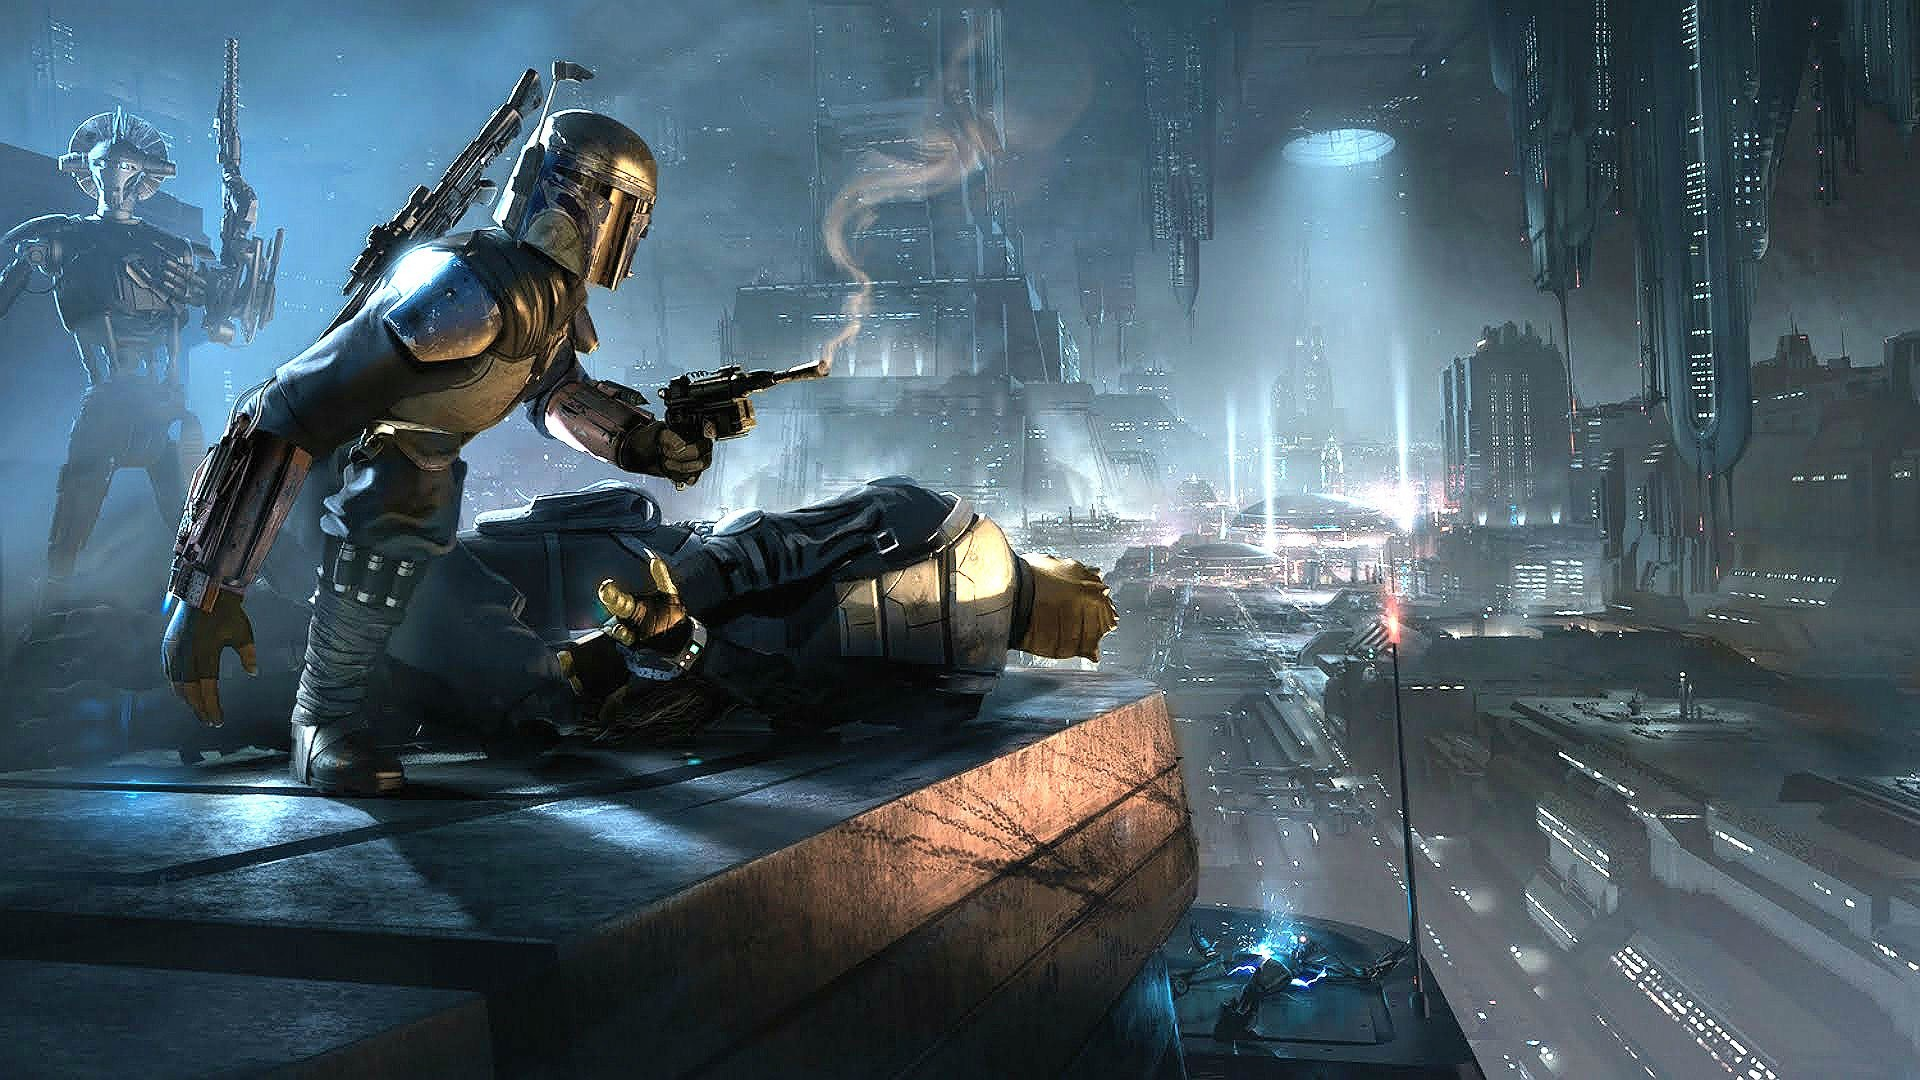 Star Wars The Old Republic Wallpaper 1920x1080 Posted By Christopher Sellers